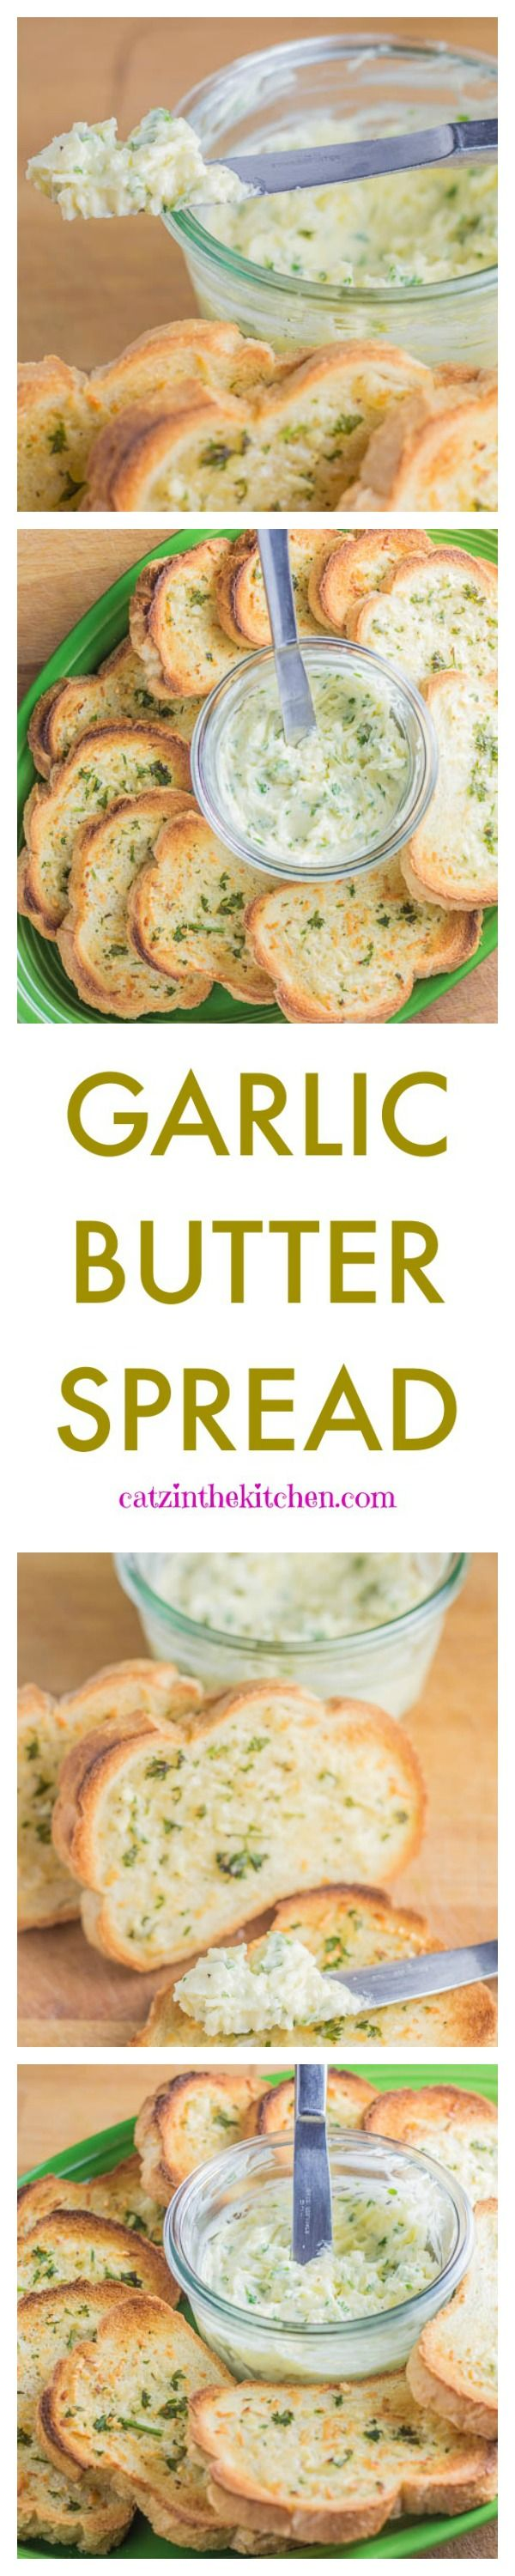 Super easy, cheap, and delicious Garlic Butter spread recipe.